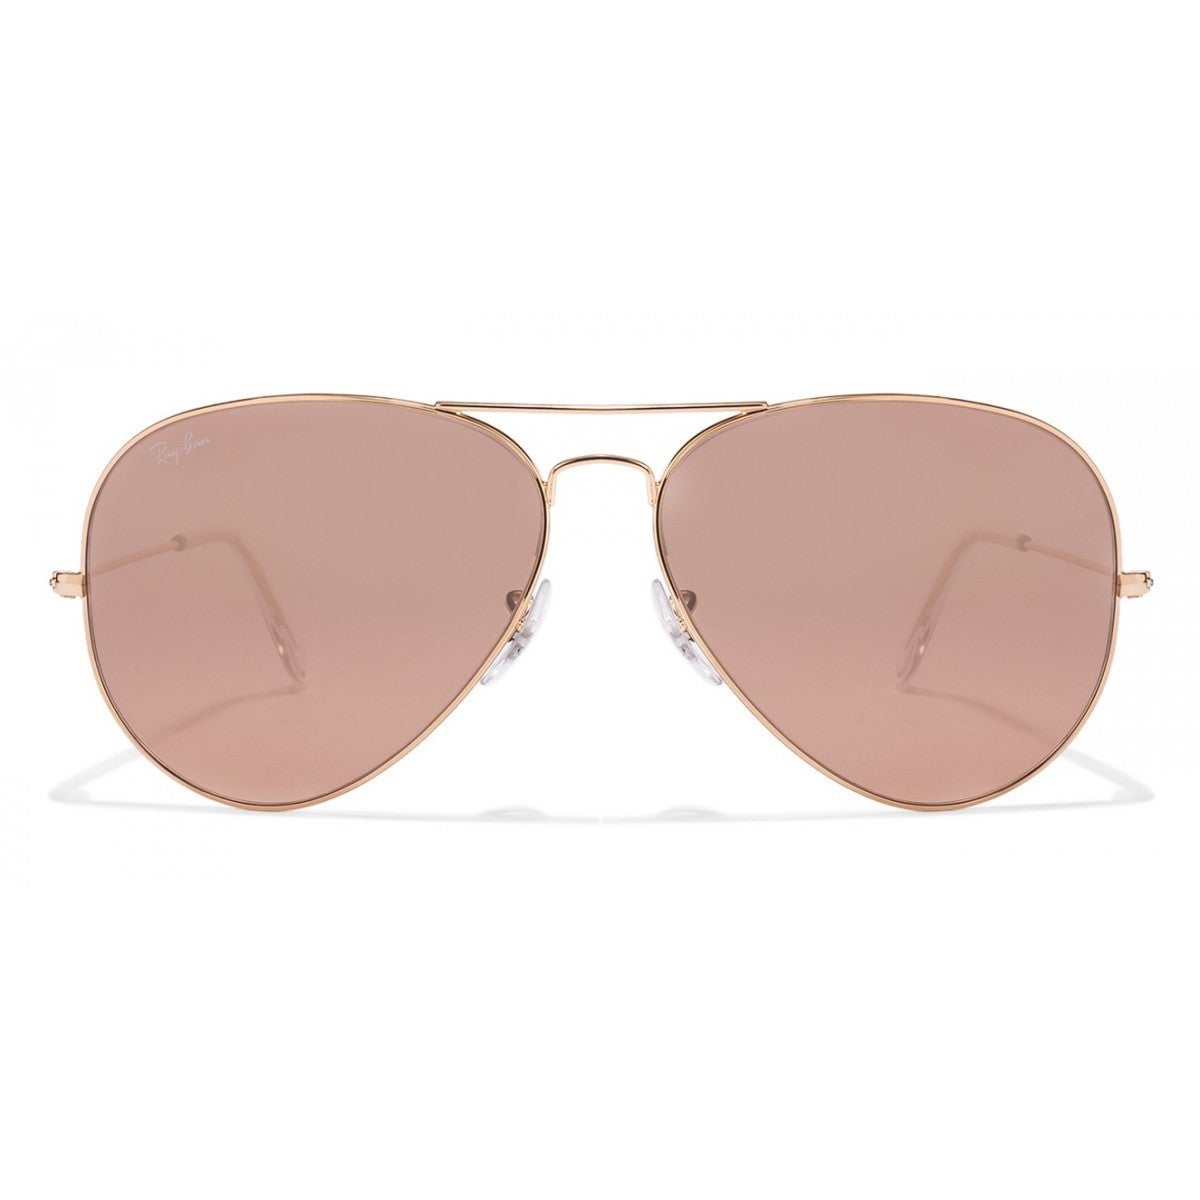 59ce9ed7cd Shop Ray-Ban RB3025 001 3E Aviator Gradient Gold Frame Silver Pink Mirror  62mm Lens Sunglasses - Free Shipping Today - Overstock - 14442344